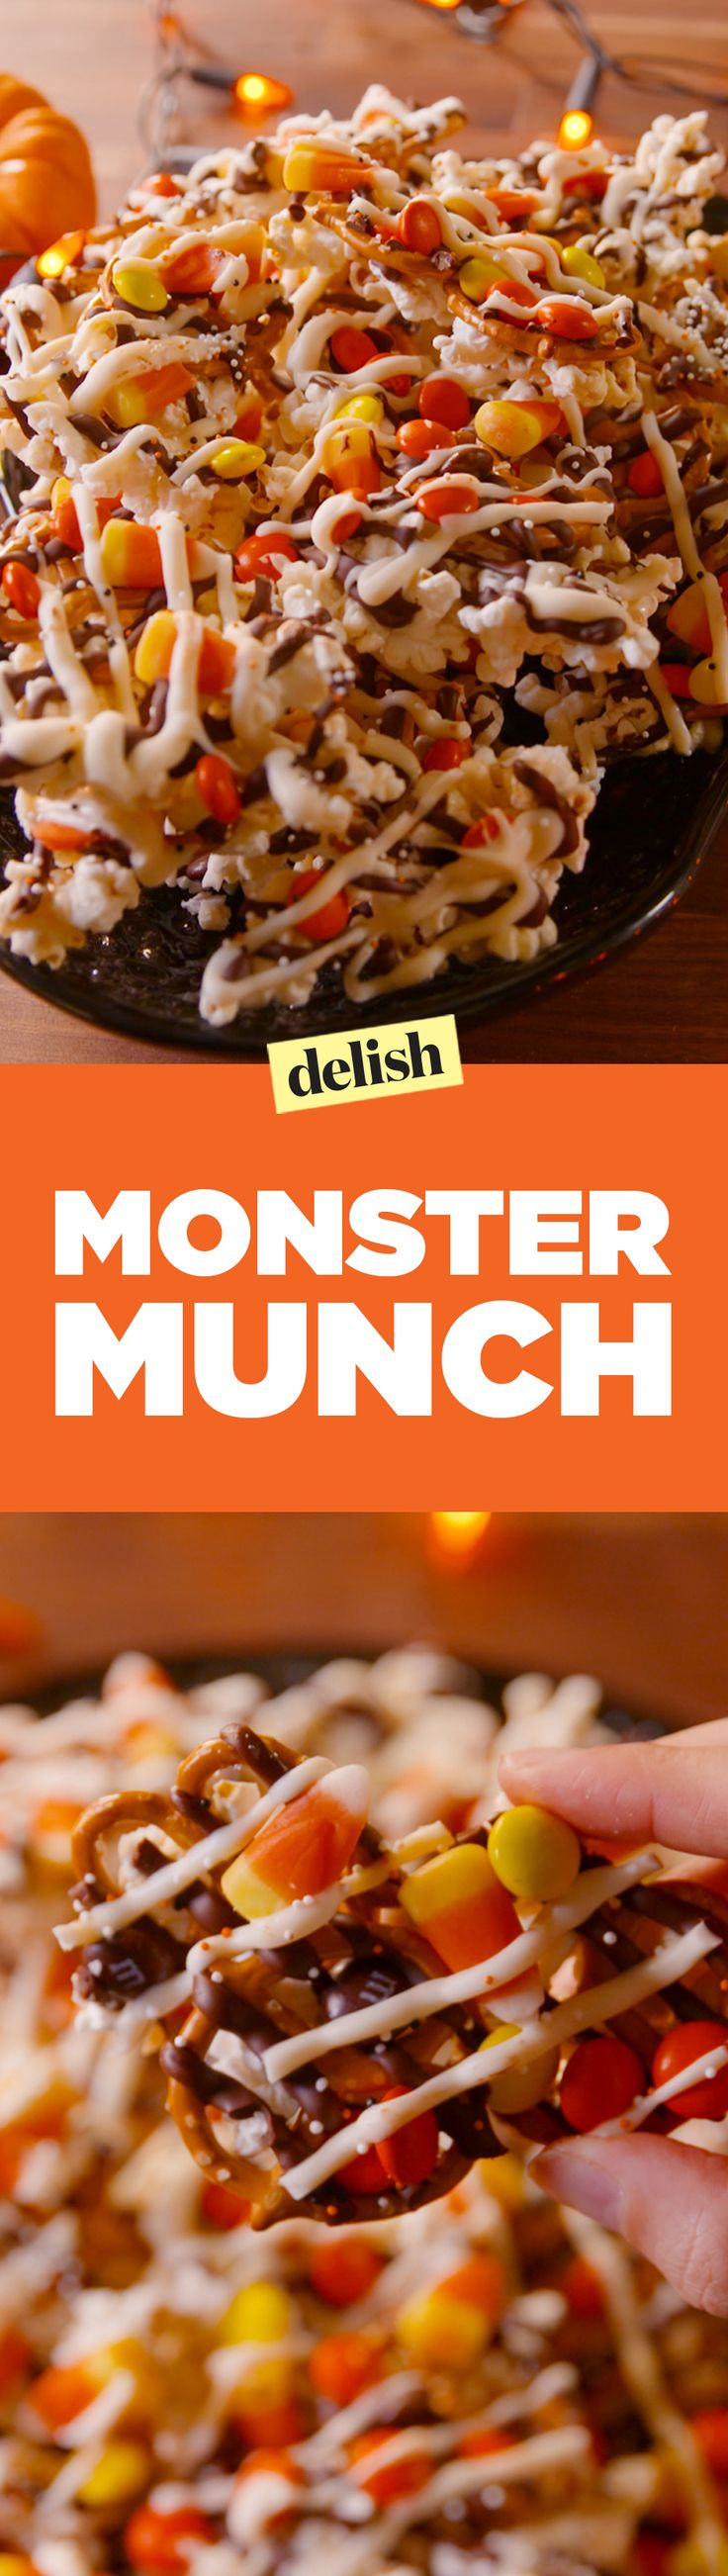 Monster Munch is this year's most popular Halloween treat. Get the recipe on Delish.com.